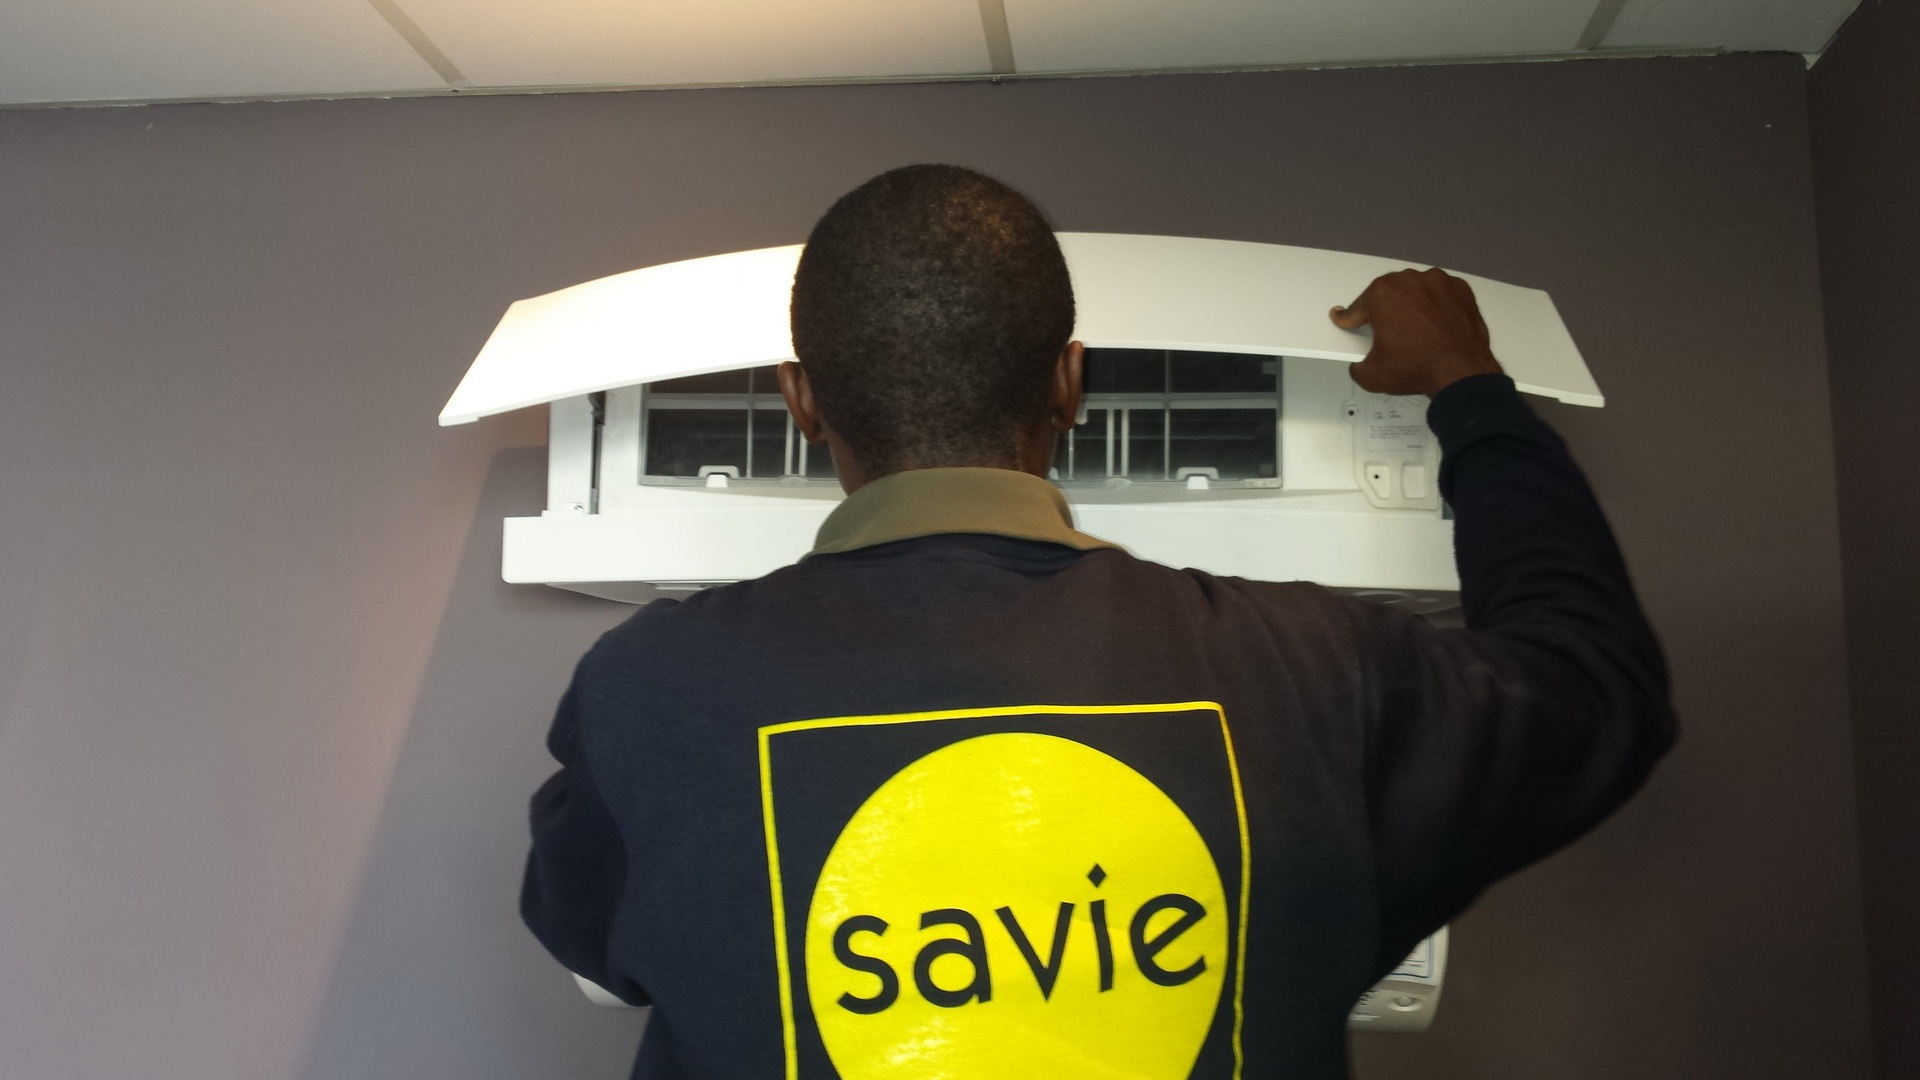 Personnel Savie